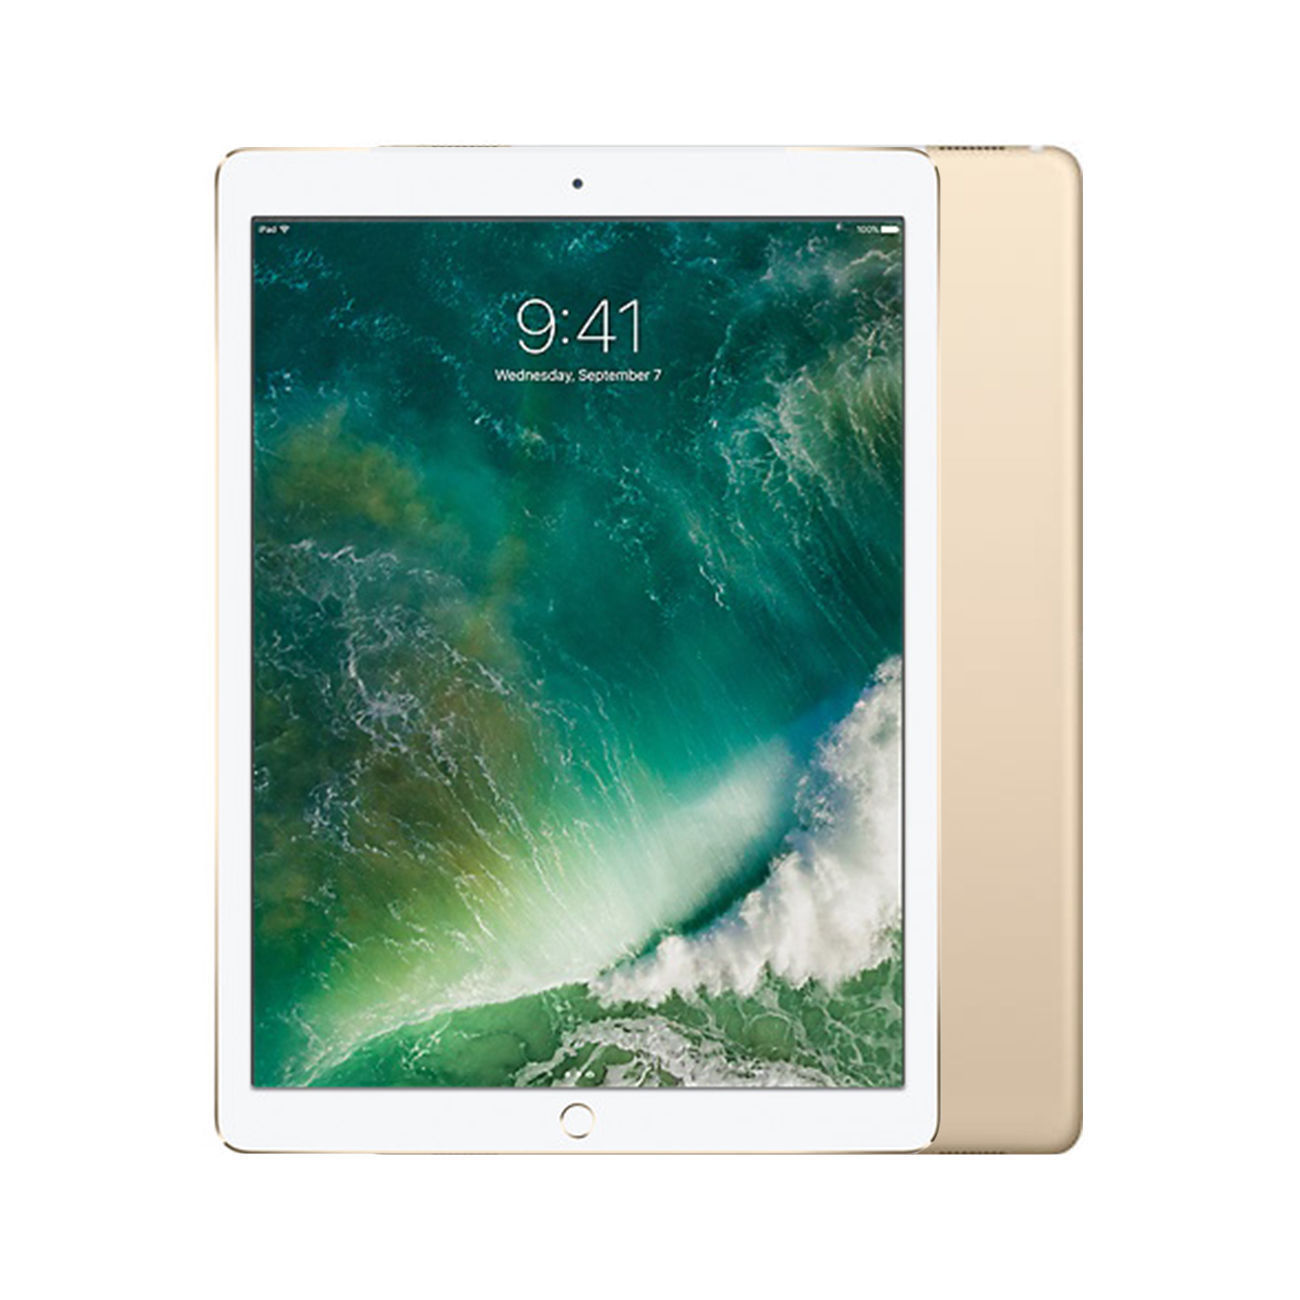 Apple iPad Pro 12.9 Wi-Fi + Cellular [128GB] [Gold] [Excellent] [12M]